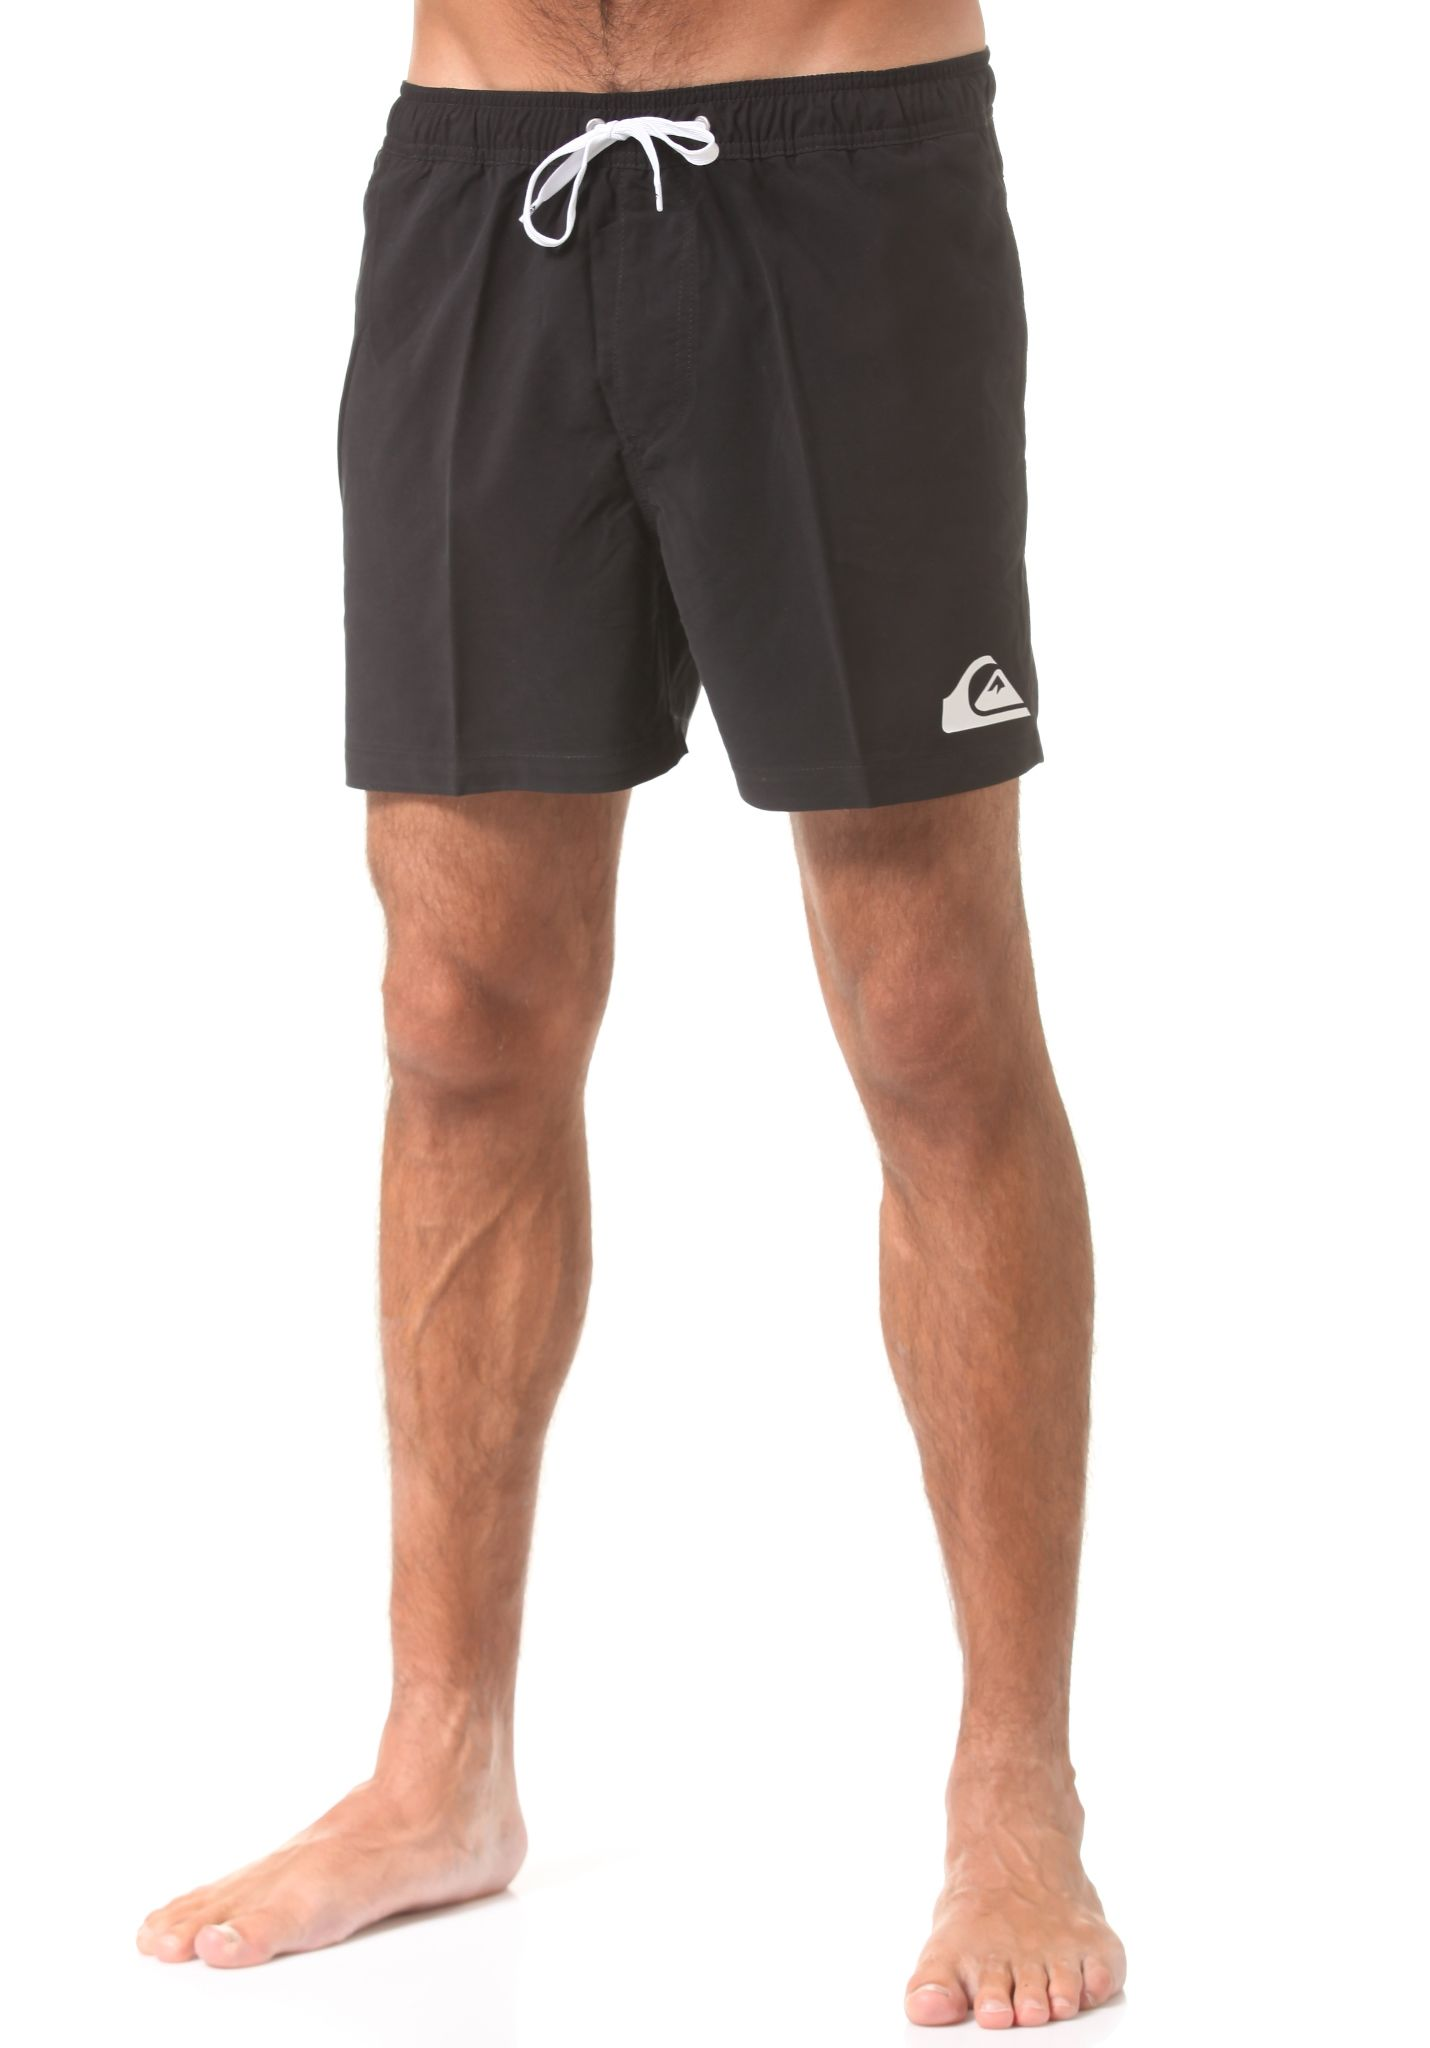 5ed7f92b4bbdfa Quiksilver Everyday VL15 - Short de bain pour Homme - Noir - Planet Sports